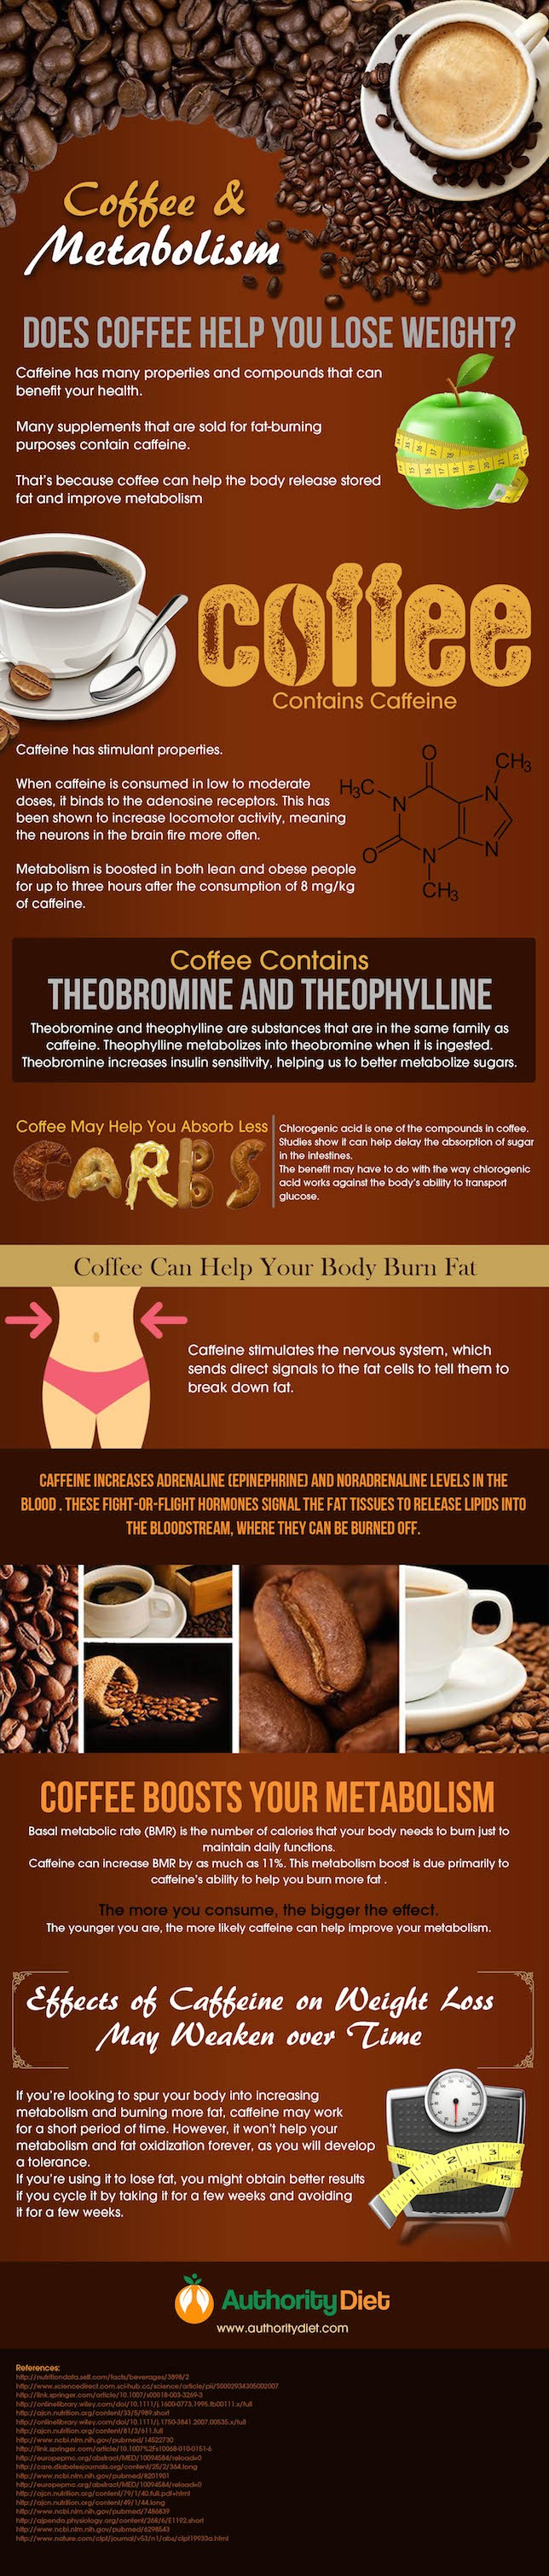 Coffee affects metabolism in greater ways than previously ...